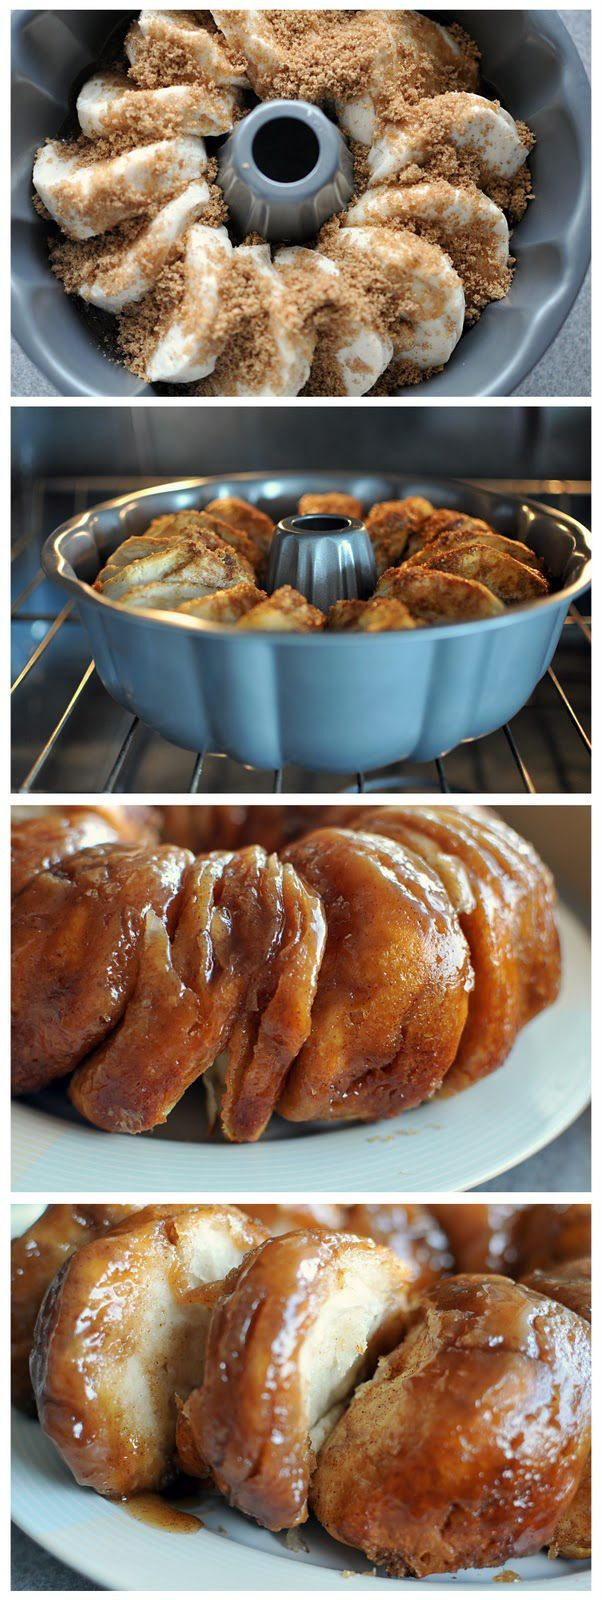 Sticky buns - so easy so delicious like homemade Pillsbury caramel rolls. Already made them twice.  Sheli